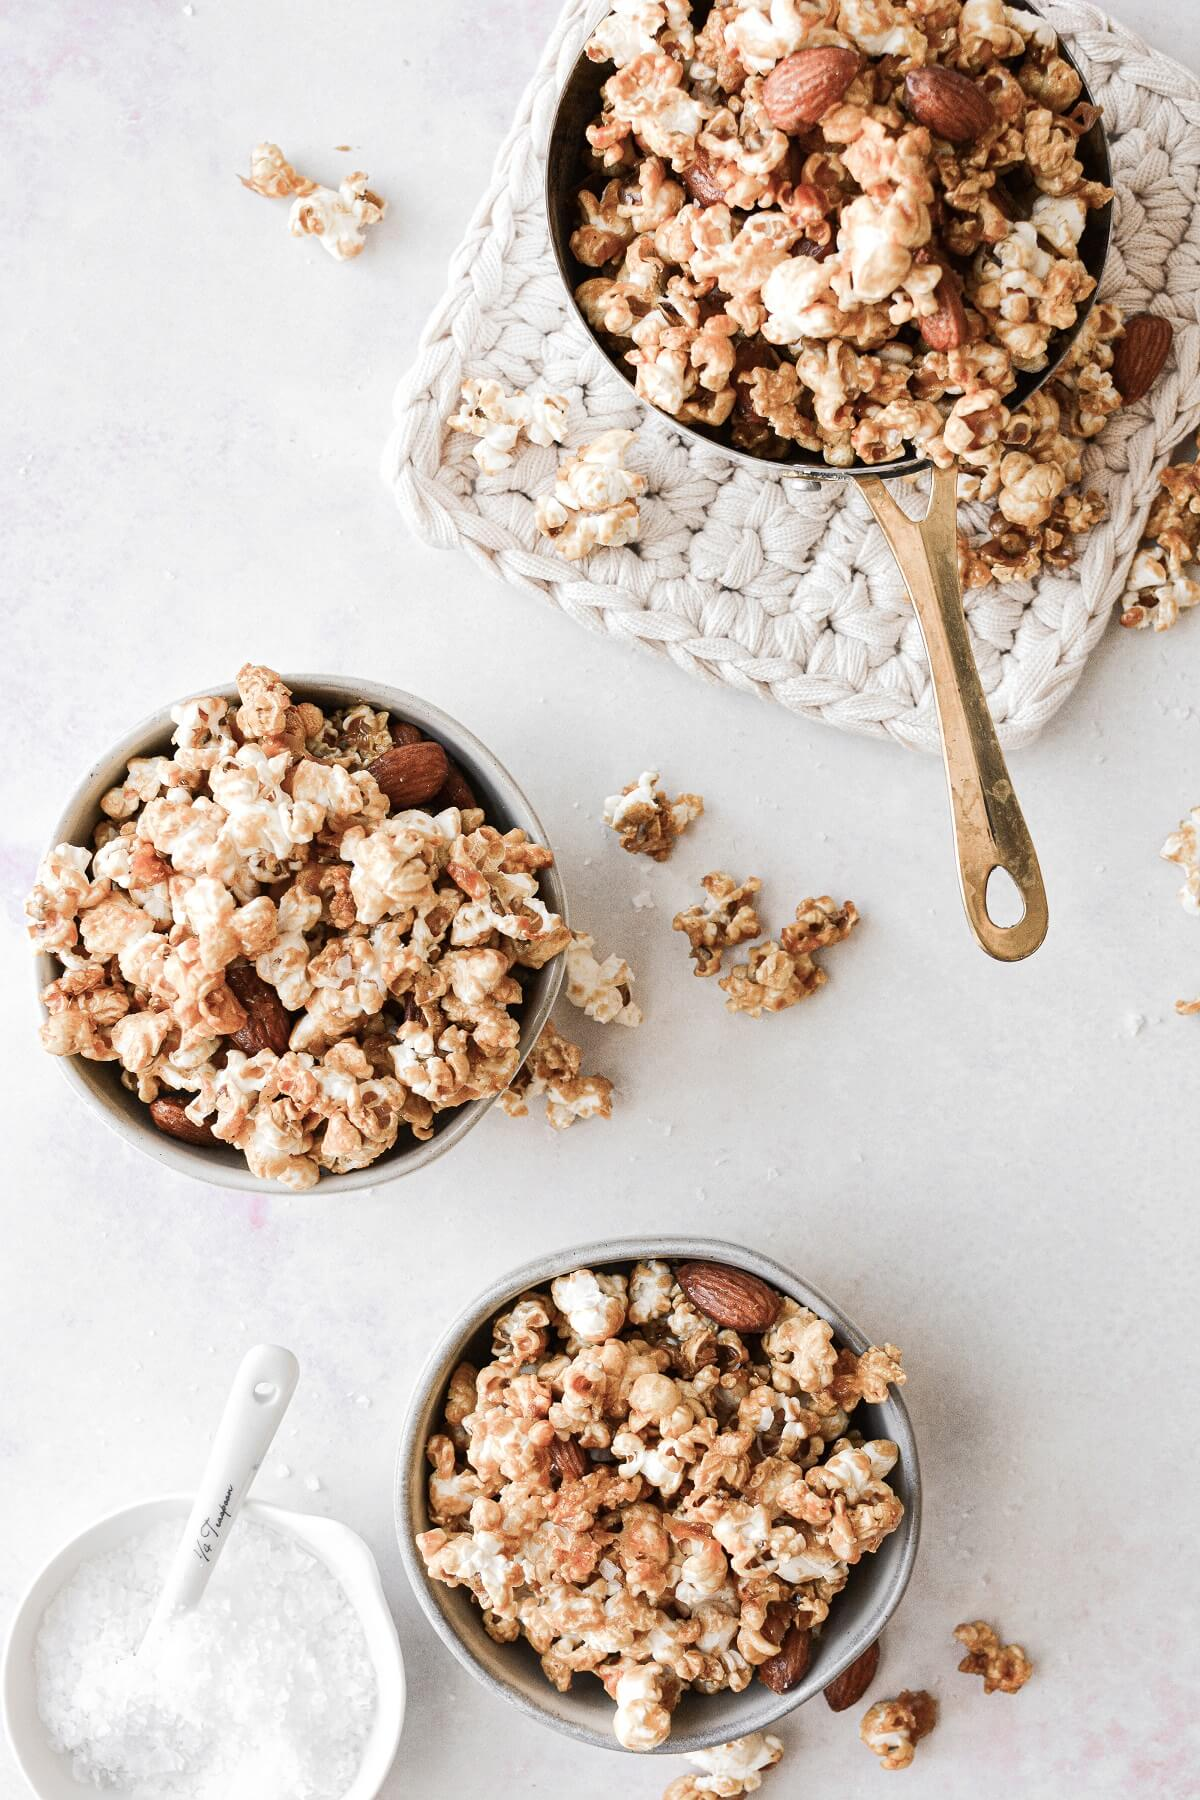 Bowls of homemade caramel popcorn with almonds.